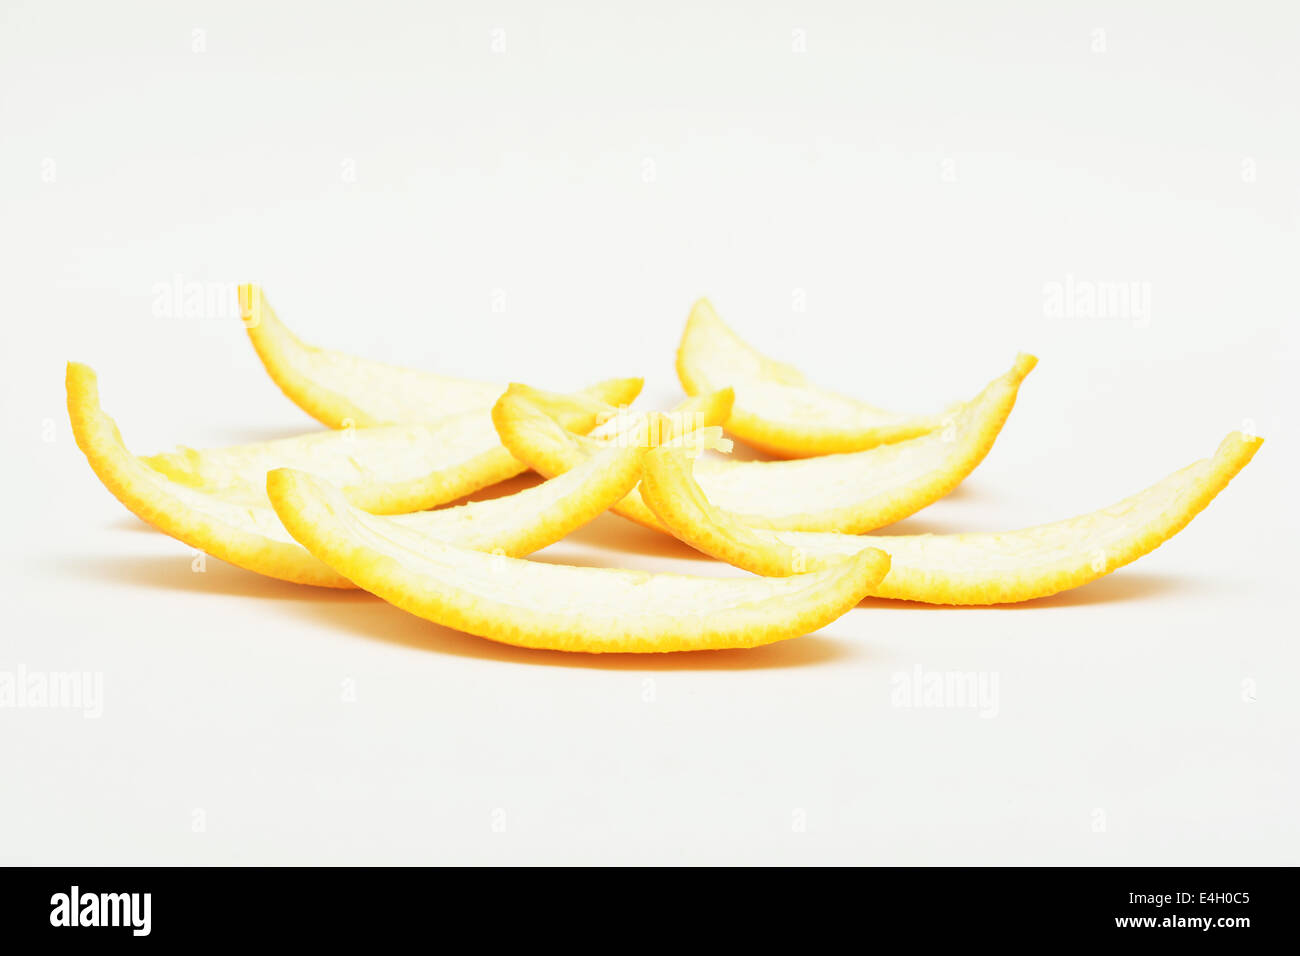 peel of oranges - Stock Image